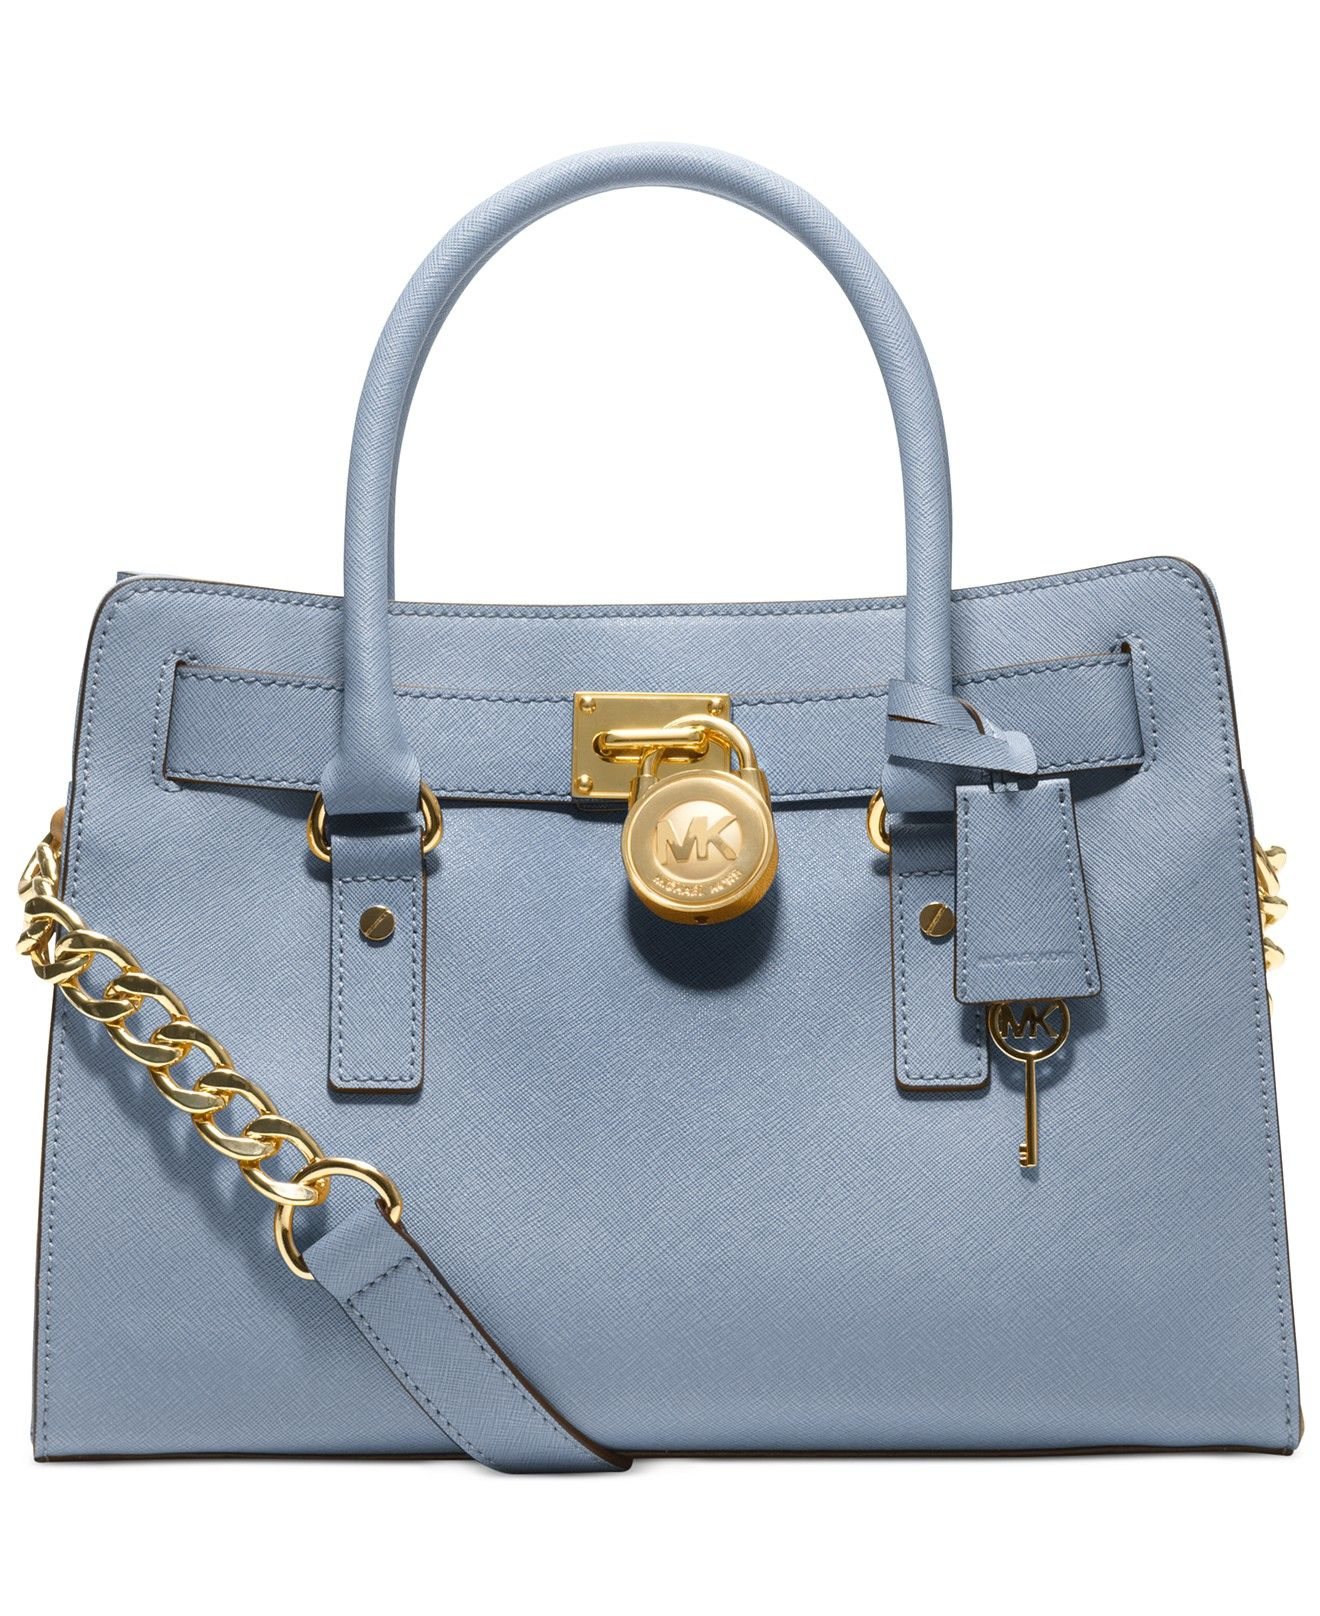 MICHAEL Michael Kors Hamilton Saffiano Leather East West Satchel - Handbags  \u0026 Accessories - Macy\u0027s